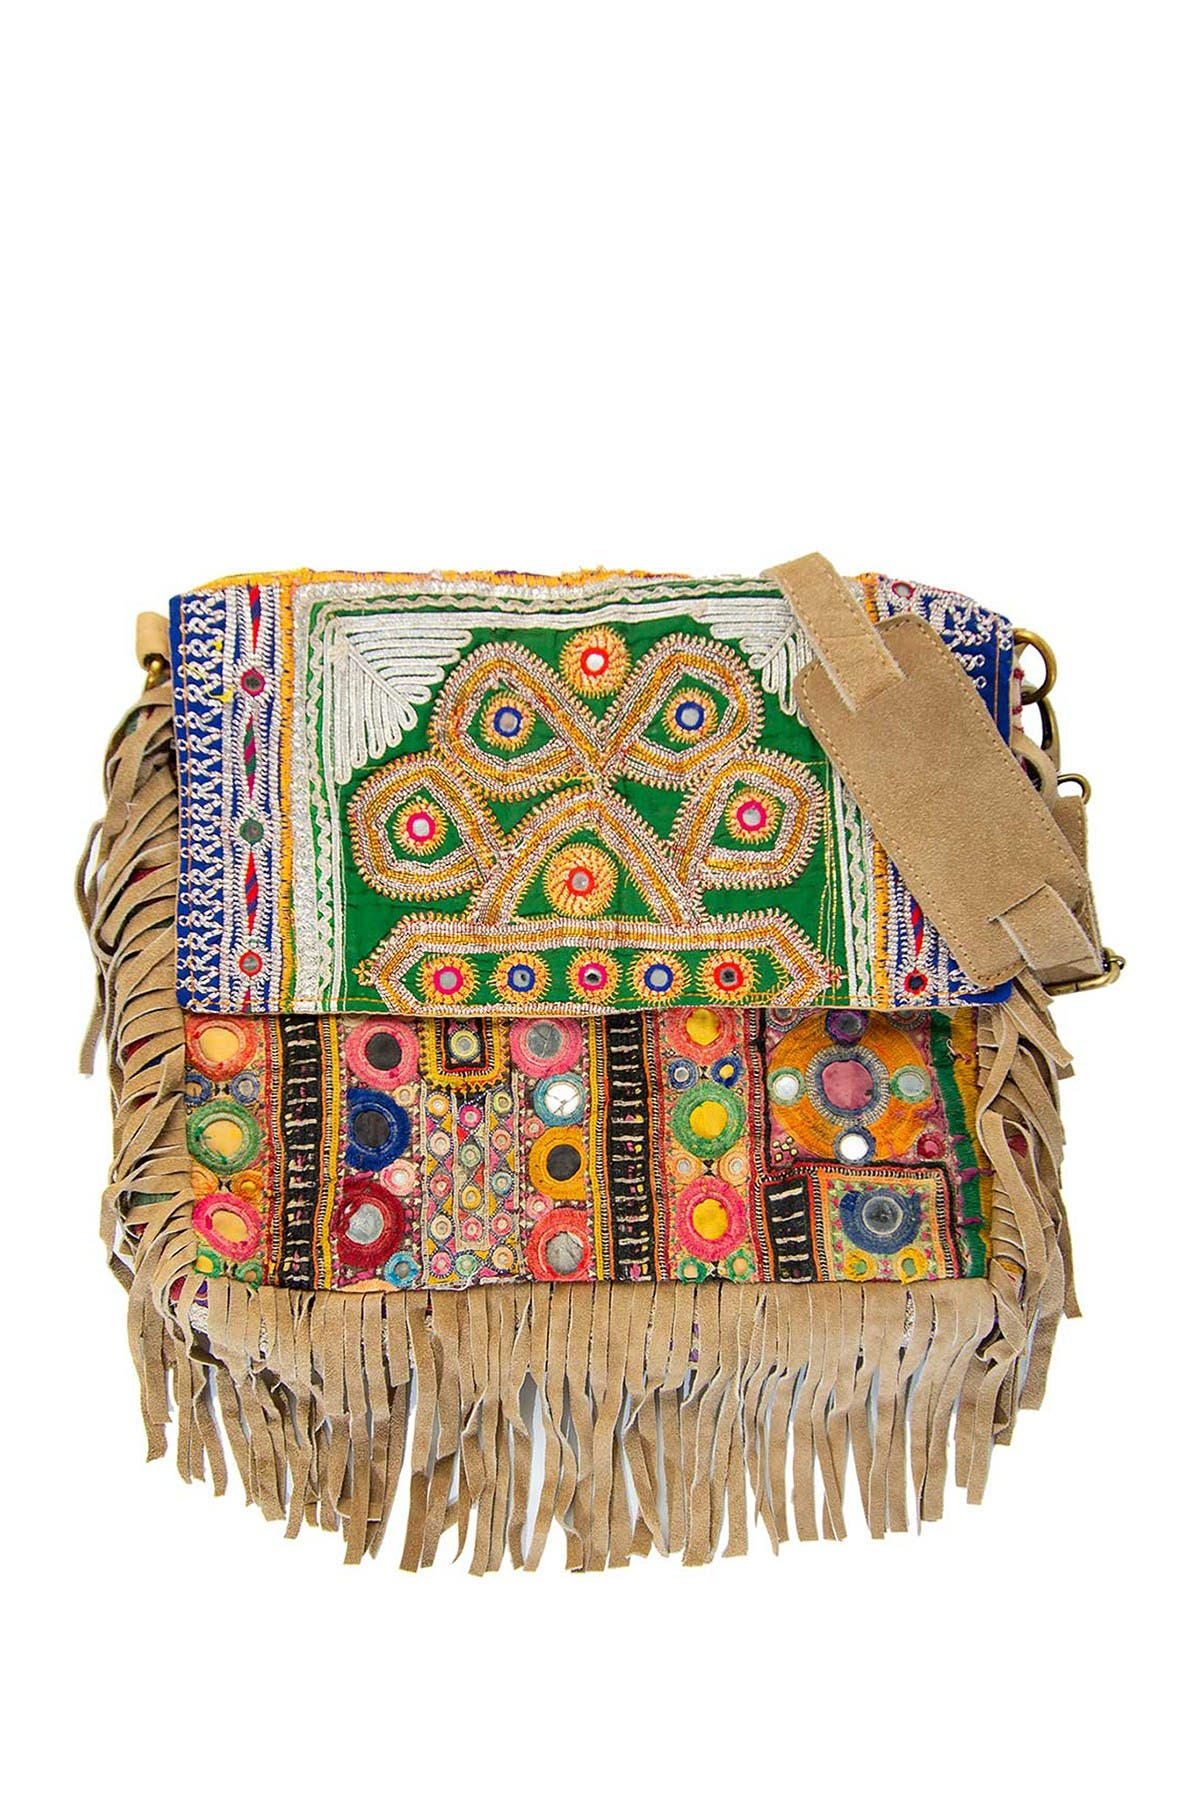 Image of Vintage Addiction Boho Chic Suede Fringe Messenger Bag